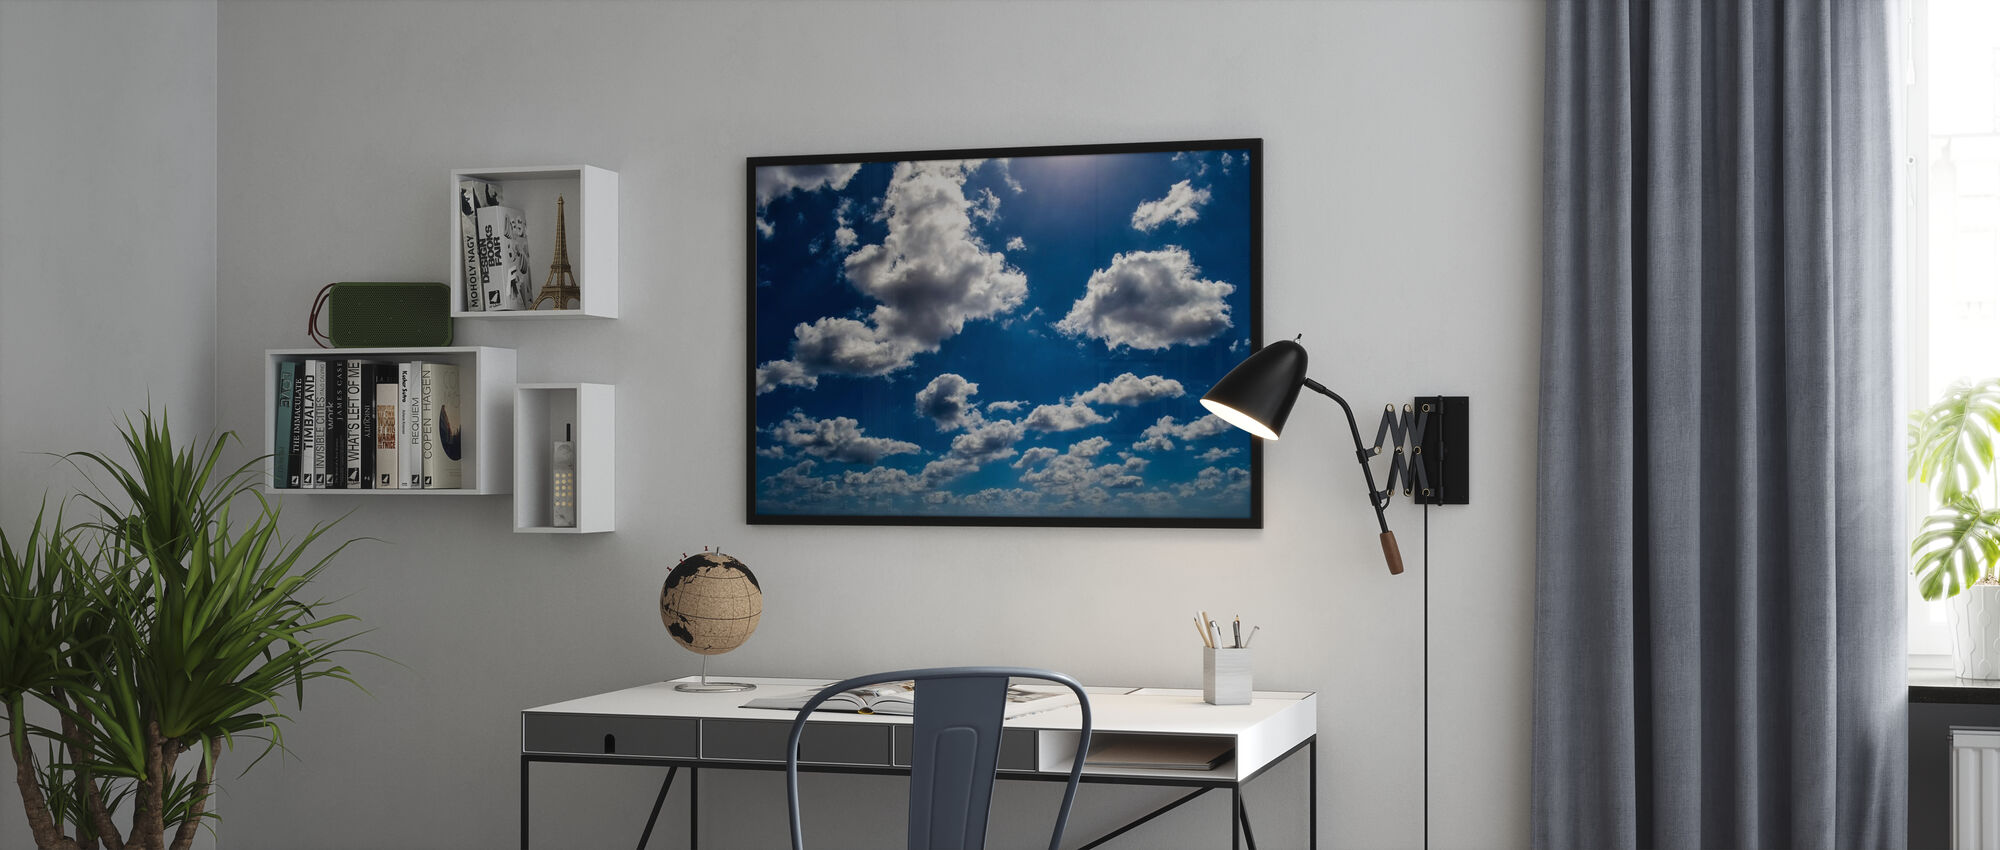 Blue Sky Clouds - Poster - Office